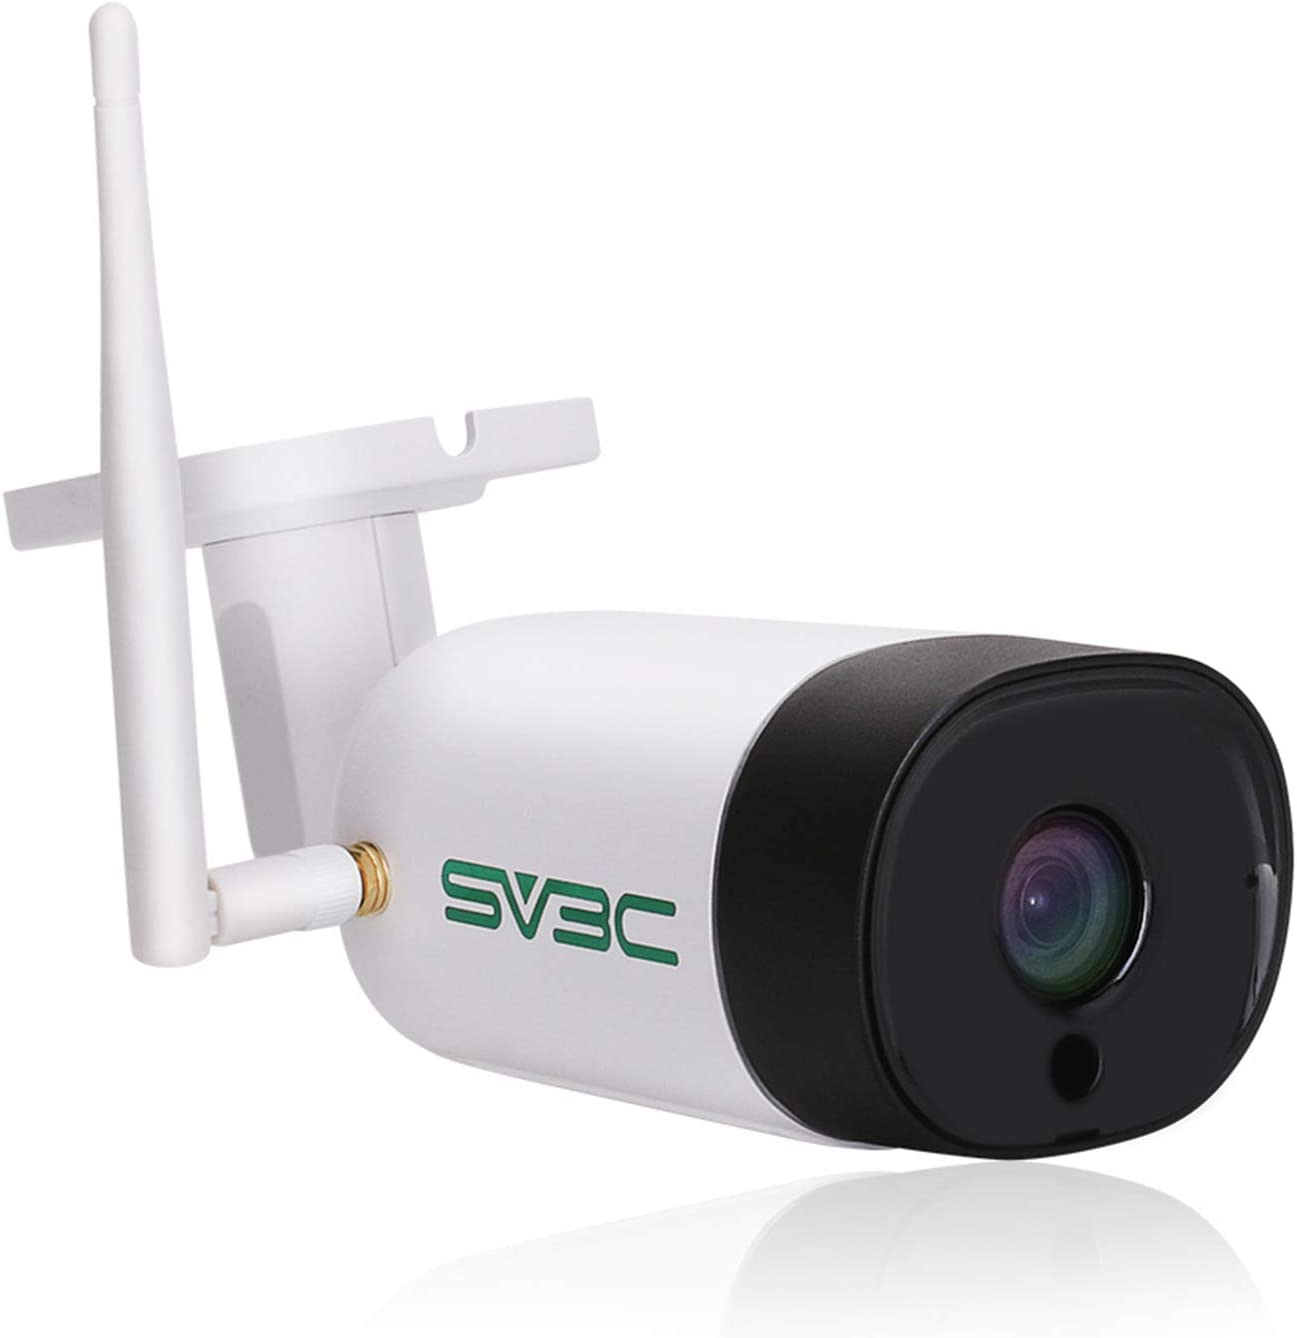 SV3C WiFi Outdoor Security Camera, 5 Megapixels Home Security Camera with HD Starlight Night Vision, Outdoor Wireless IP66 Waterproof Camera, Two Way Audio, Motion Alert, ONVIF, Max 128GB SD Card